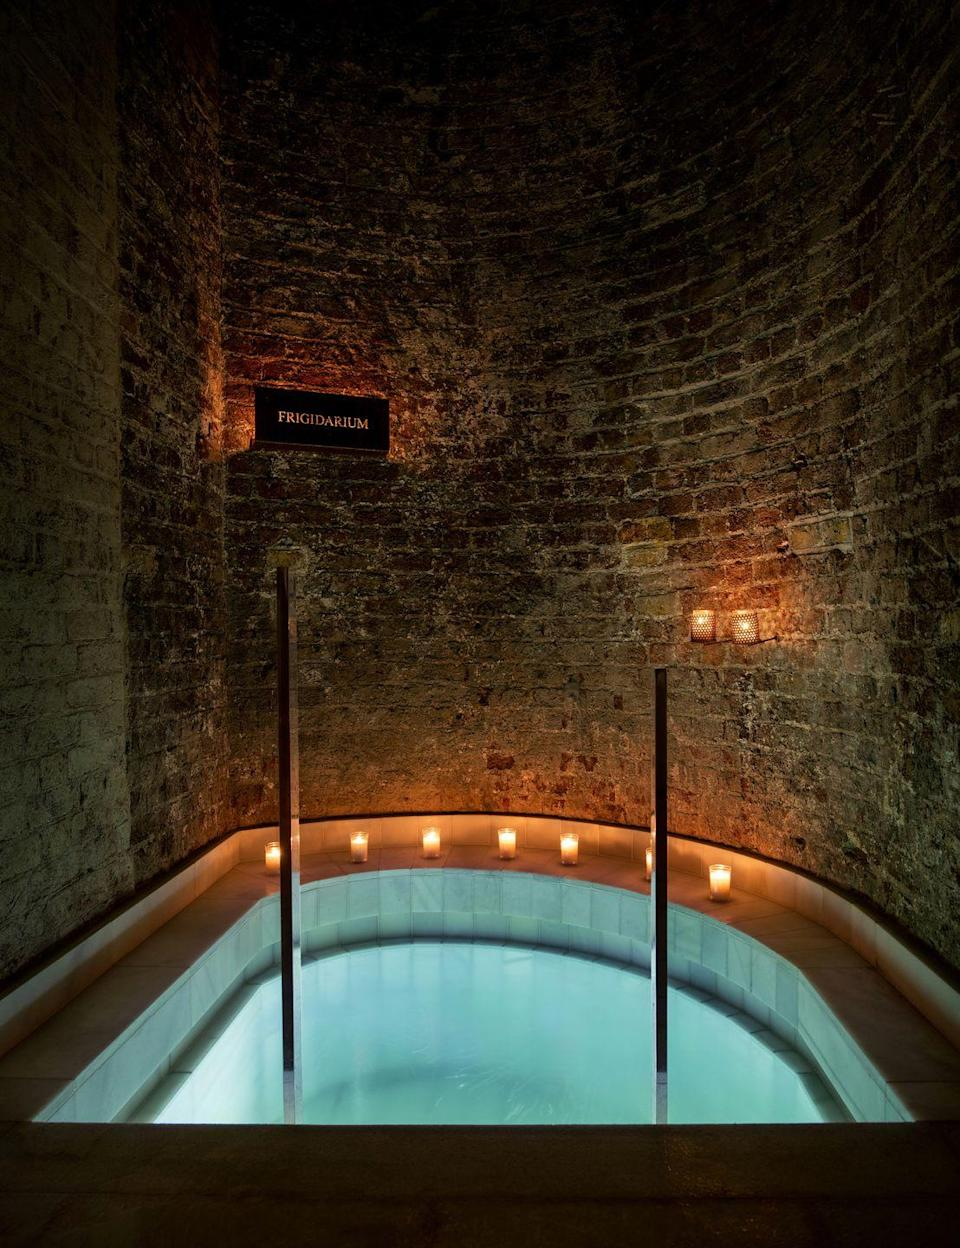 """<p>AIRE Ancient Baths - Prices start at £90.00 pp</p><p>Opened earlier this summer, AIRE Ancient Baths is redefining what it means to go underground in London. Offering a range of relaxation experiences, including massages and rituals, as well as functioning as an ancient bath inspired by Roman, Greek, and Ottoman civilisations, we couldn't think of a better place to hang out in candlelight.</p><p>When you buy an AIRE experience it comes in the form of a physical box, including a brochure and experience card. Alternatively you can buy a digital gift card, which can be delivered either via email or through WhatsApp.</p><p><a class=""""link rapid-noclick-resp"""" href=""""https://beaire.com/en/london/landing/"""" rel=""""nofollow noopener"""" target=""""_blank"""" data-ylk=""""slk:SHOP NOW"""">SHOP NOW</a></p>"""